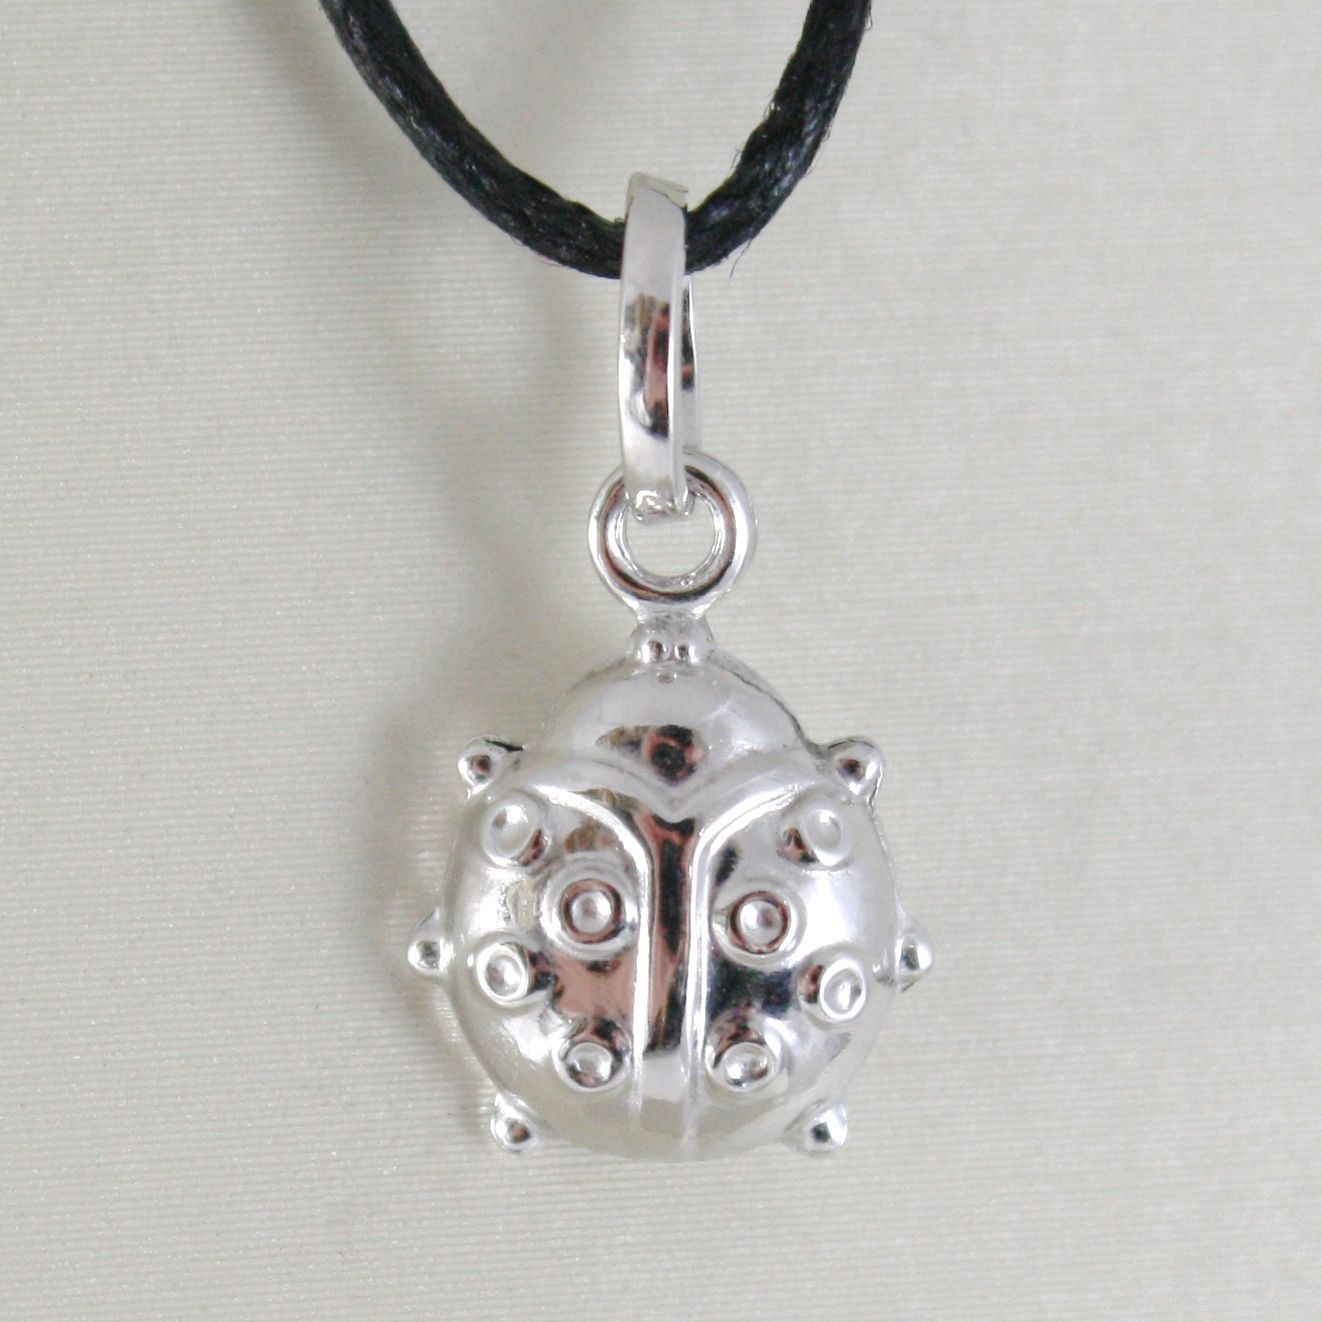 18K WHITE GOLD ROUNDED LADYBUG PENDANT CHARM 18MM SMOOTH LADYBIRD MADE IN ITALY